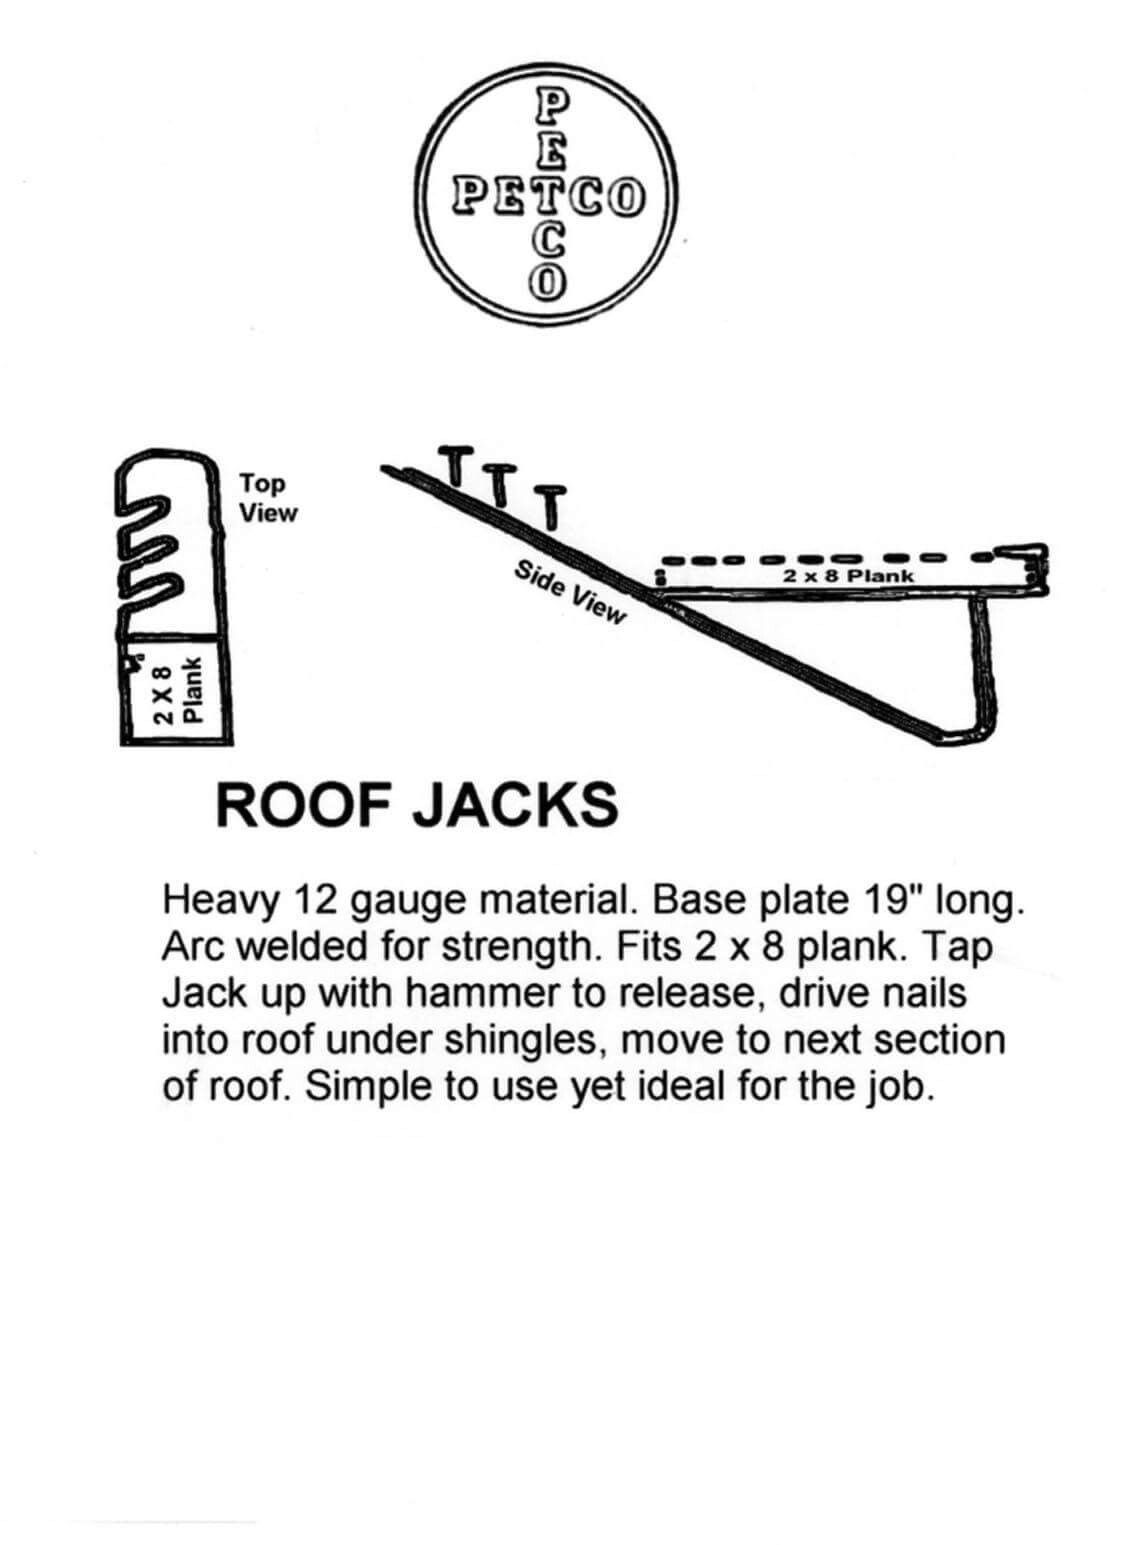 Roof jacks pettit pinterest trench drain sons and steel malvernweather Image collections